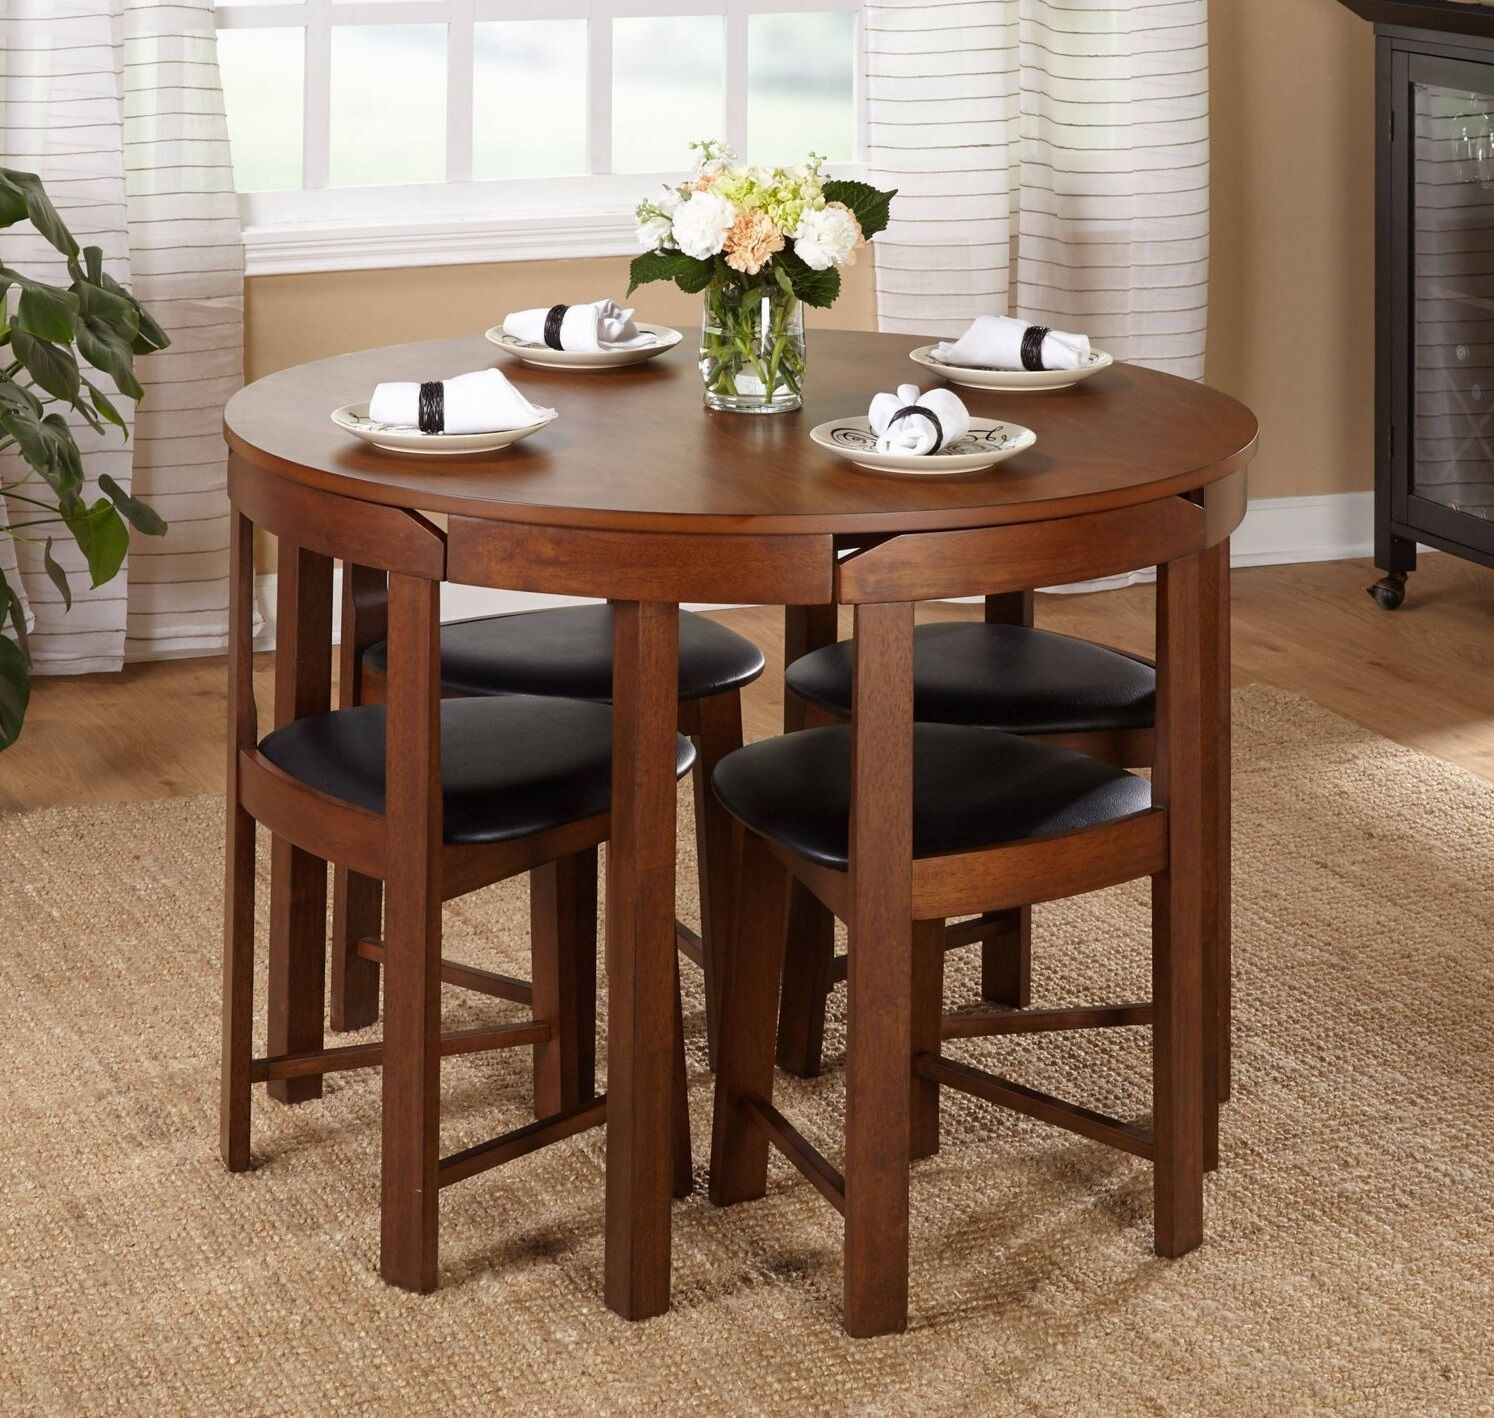 kitchen dining furniture modern 5pc dining table set kitchen dinette chairs breakfast bar nook patio new ebay 7121